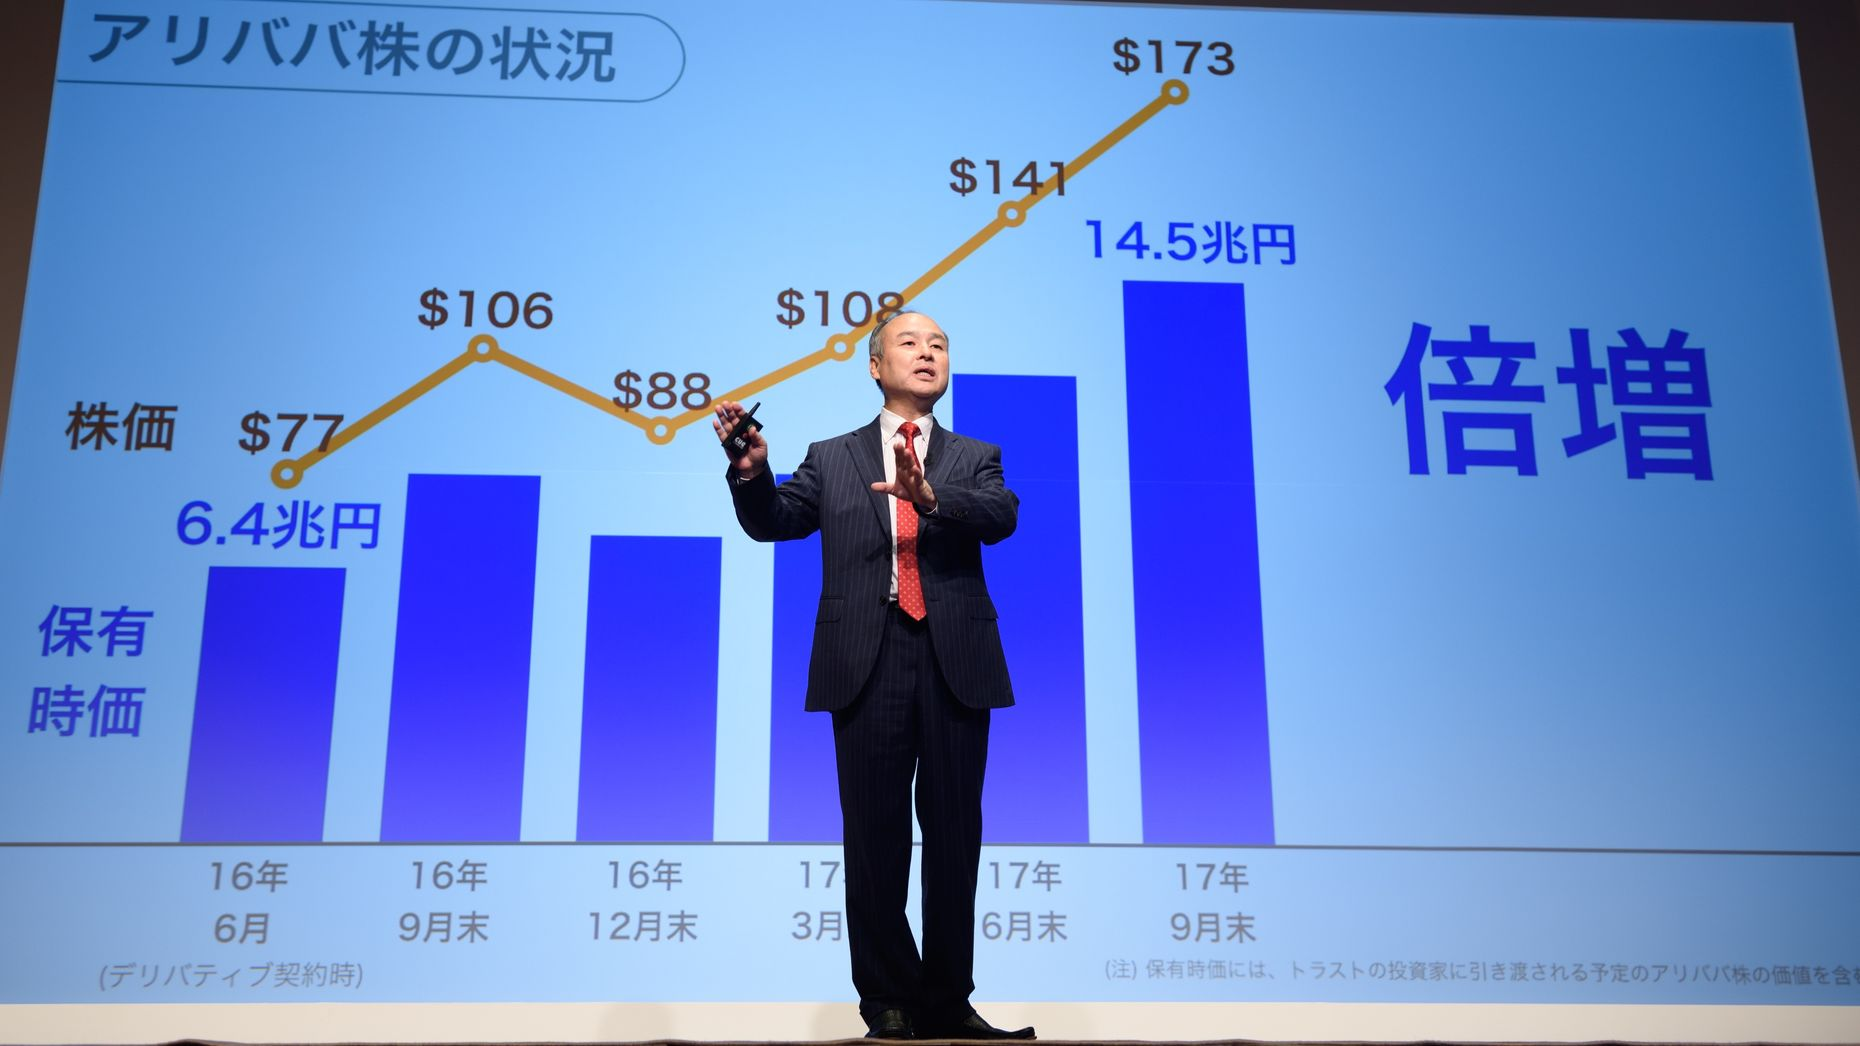 SoftBank CEO Masayoshi Son at a news conference announcing quarterly earnings late last year. Photo by Bloomberg.